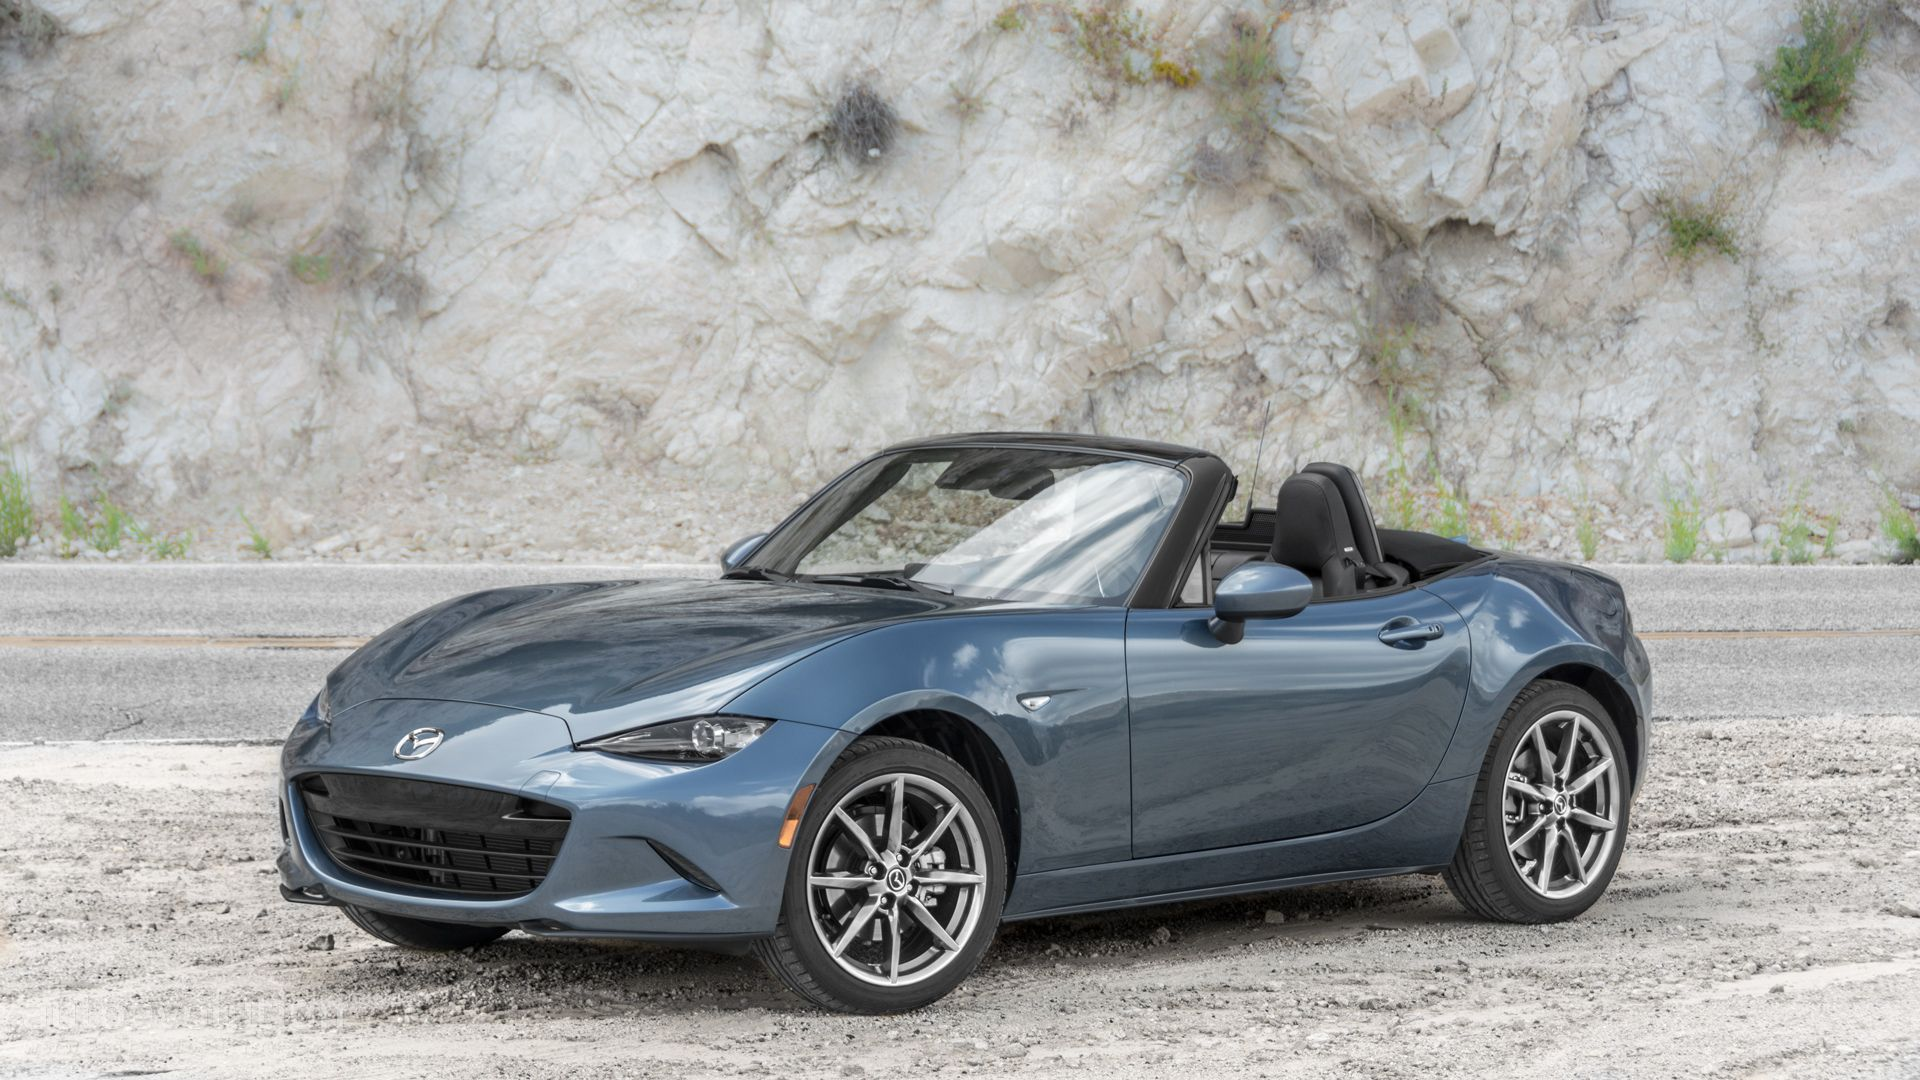 Superb Mazda MX 5 Miata